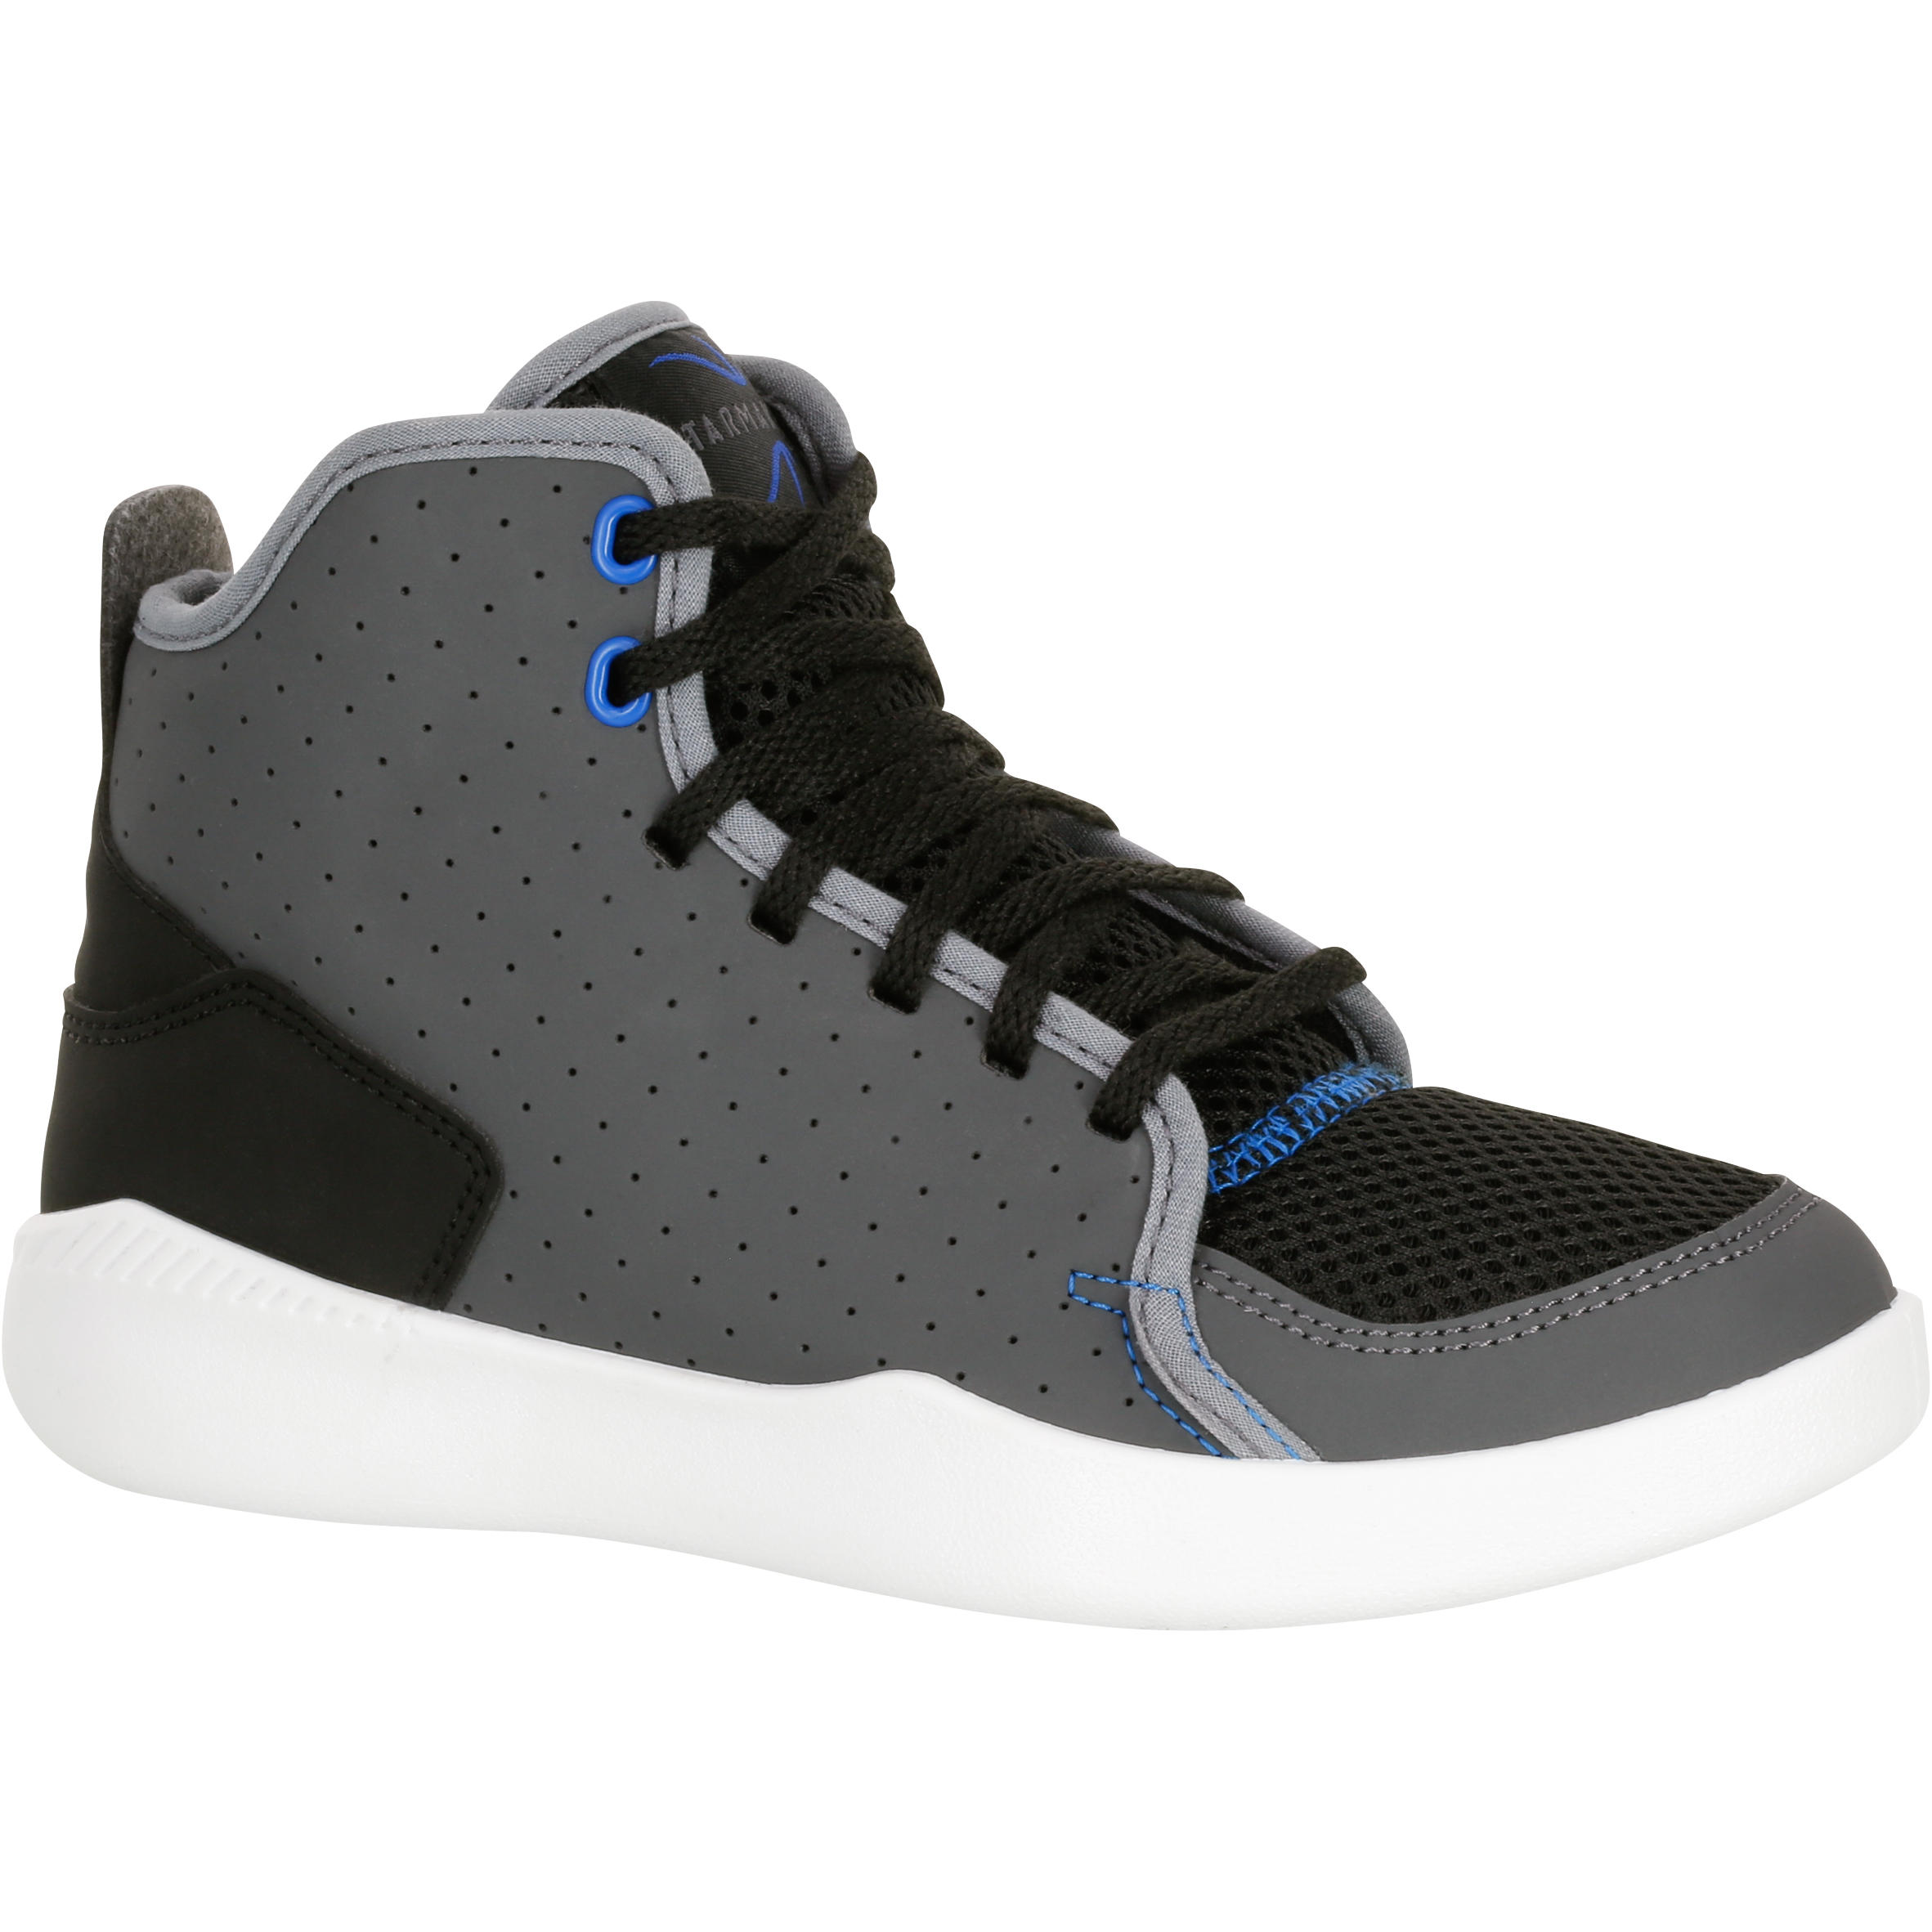 Shield 100 Kids' Basketball Shoes - Grey